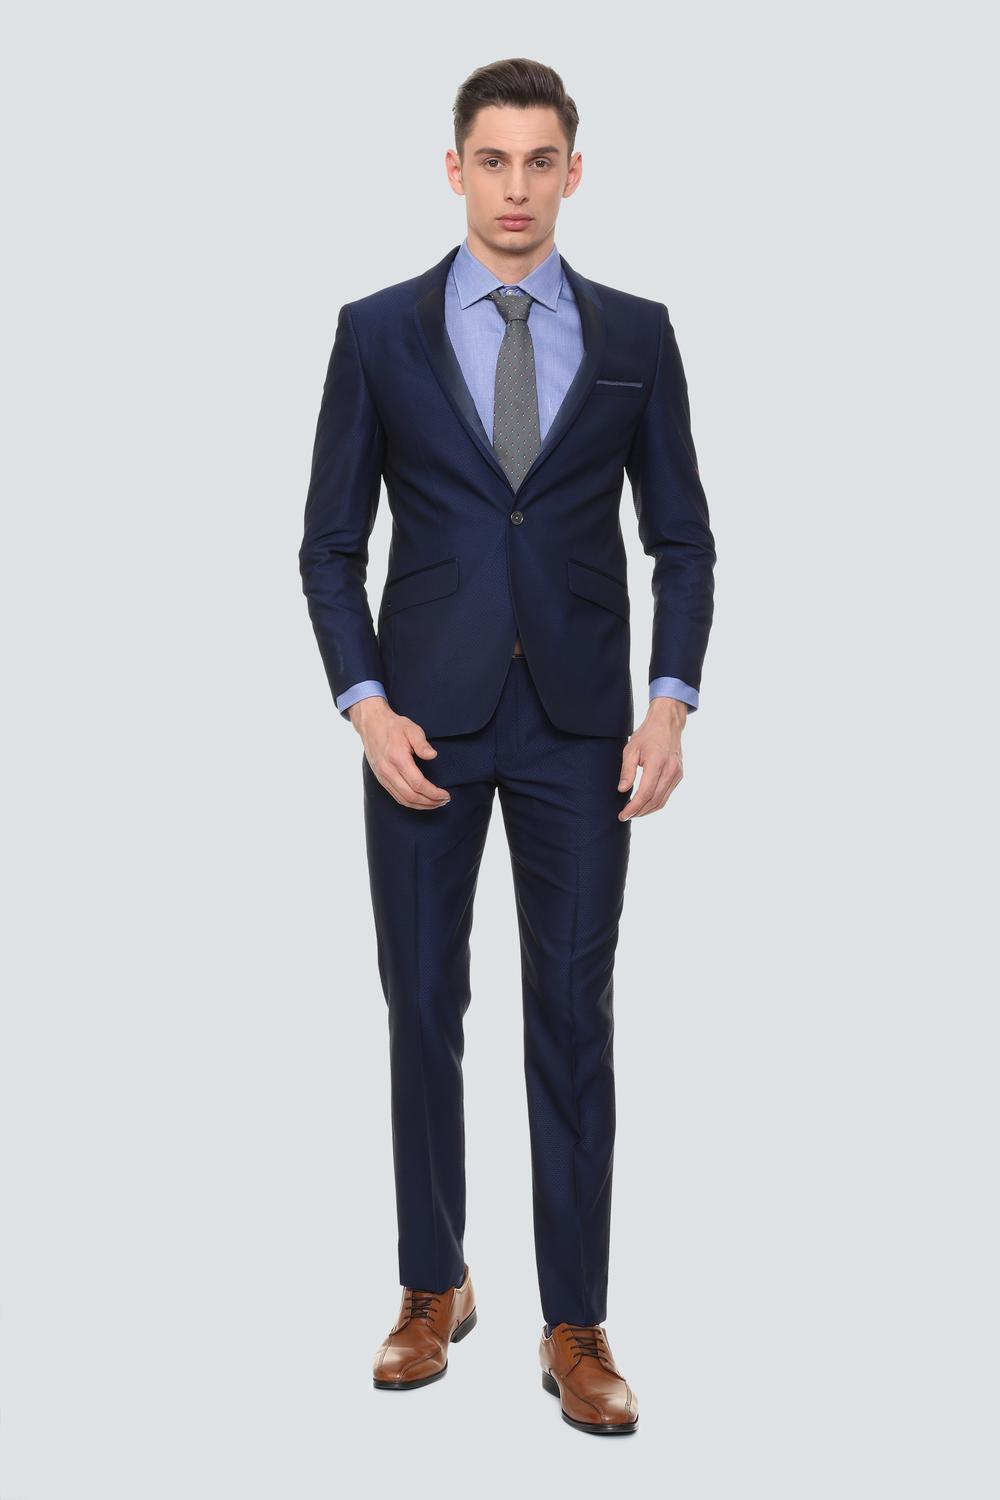 39396b1a Louis Philippe Suits & Blazers, Louis Philippe Blue Two Piece Suit for Men  at Louisphilippe.com